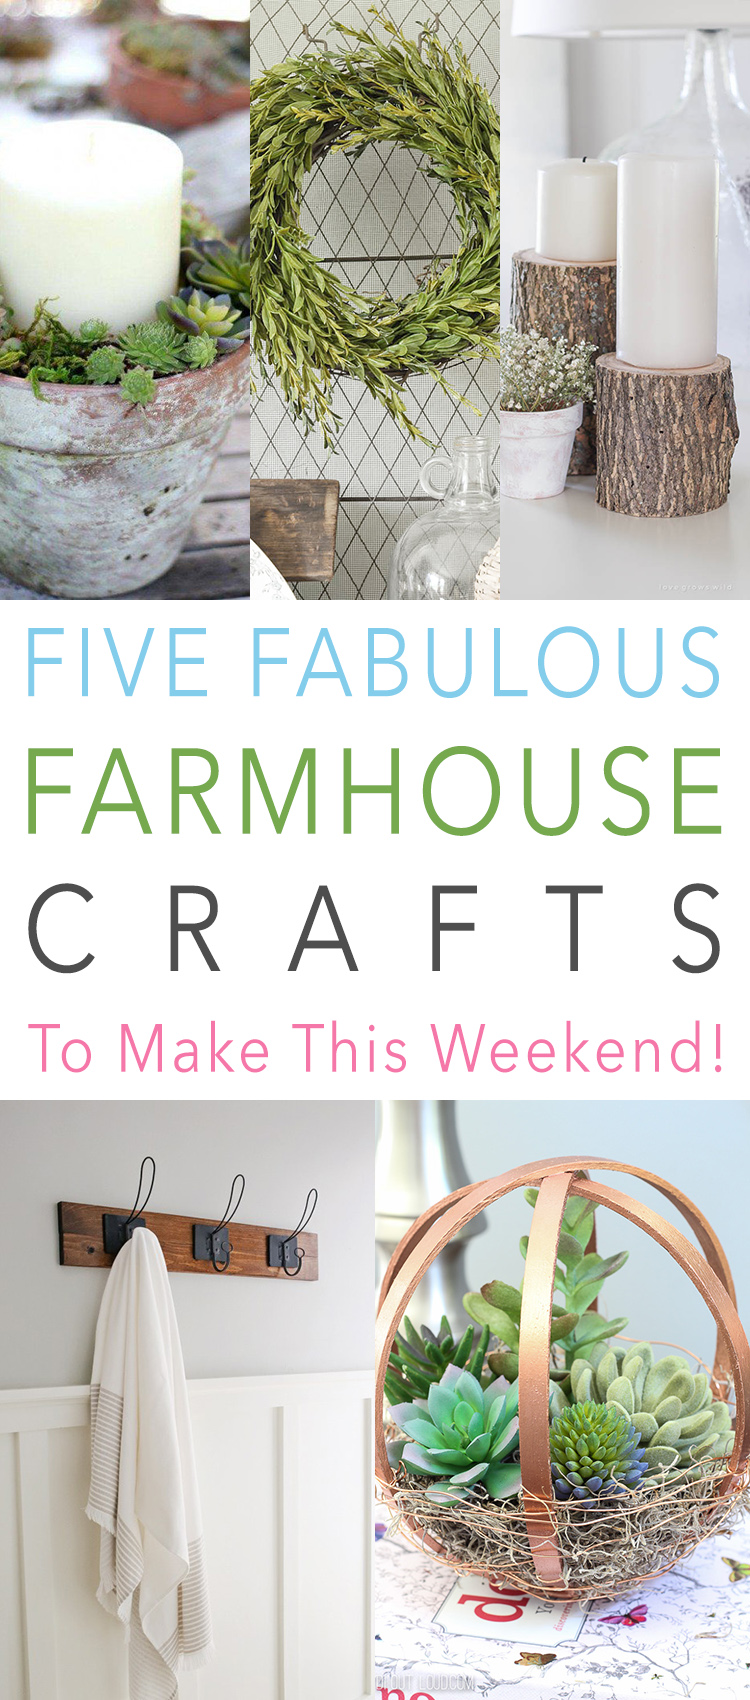 http://thecottagemarket.com/wp-content/uploads/2017/05/FarmhouseCraft-TOWER-1.jpg